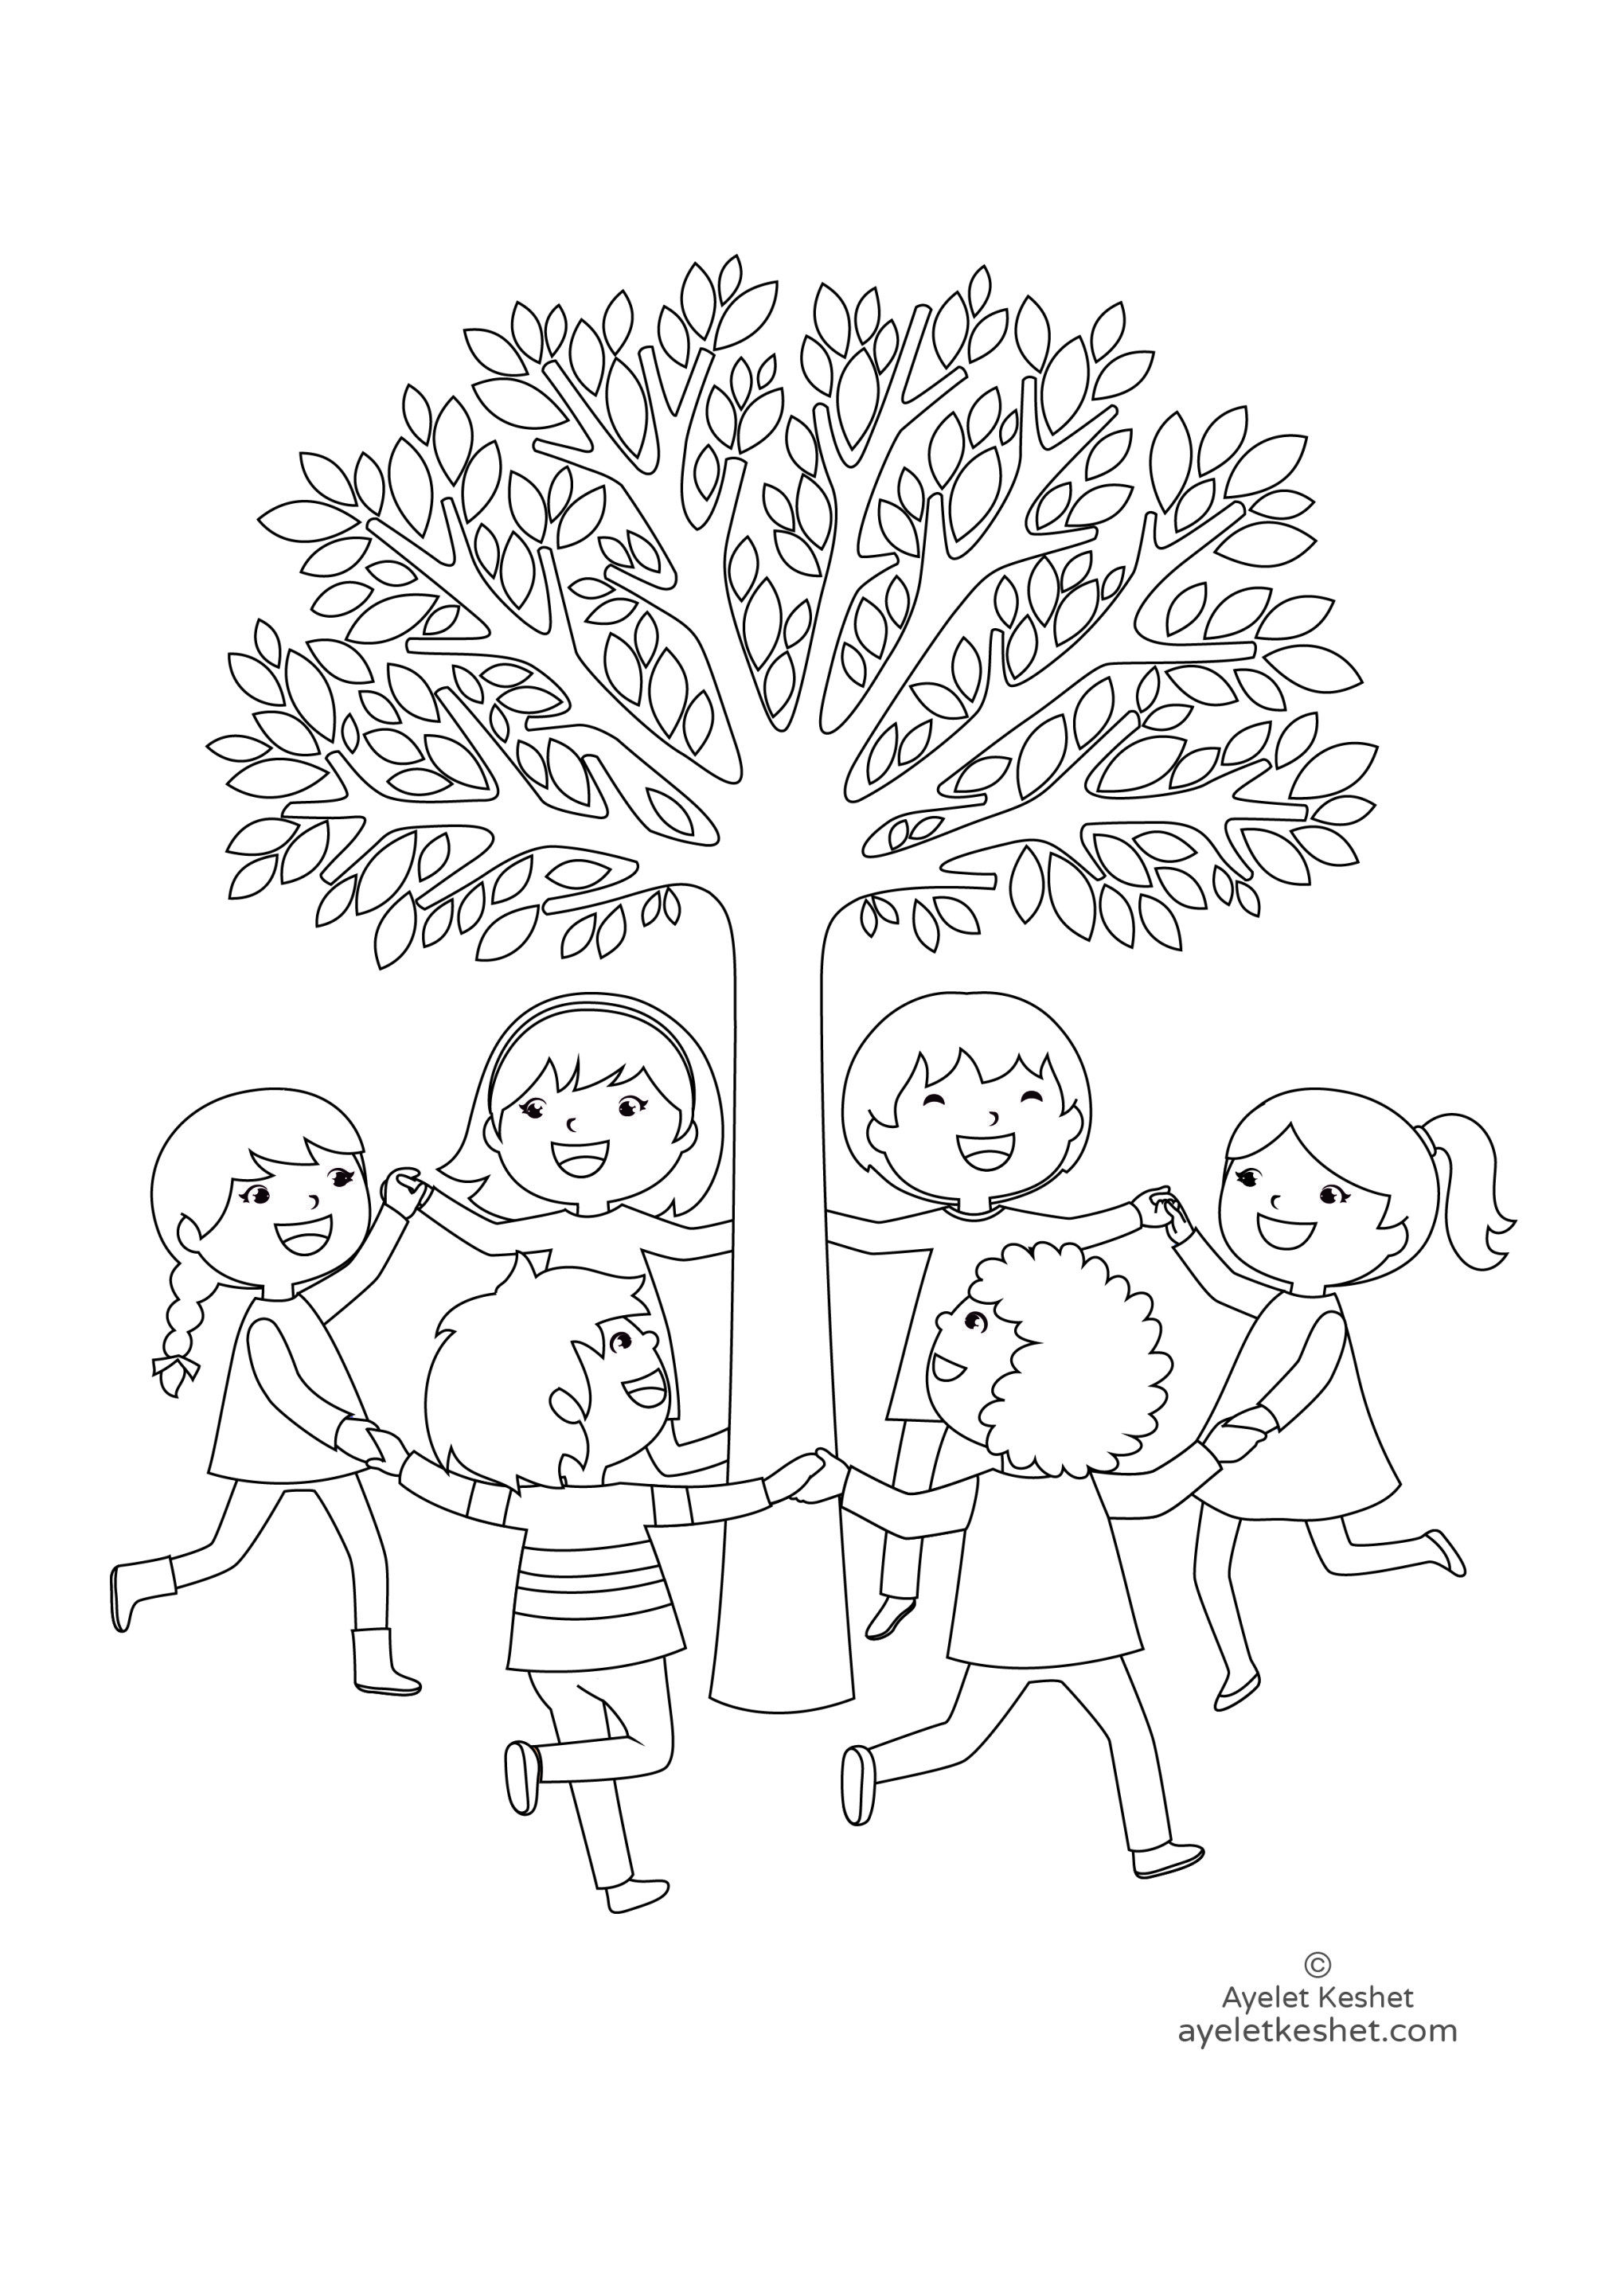 Free Coloring Pages About Friendship Ayelet Keshet Art